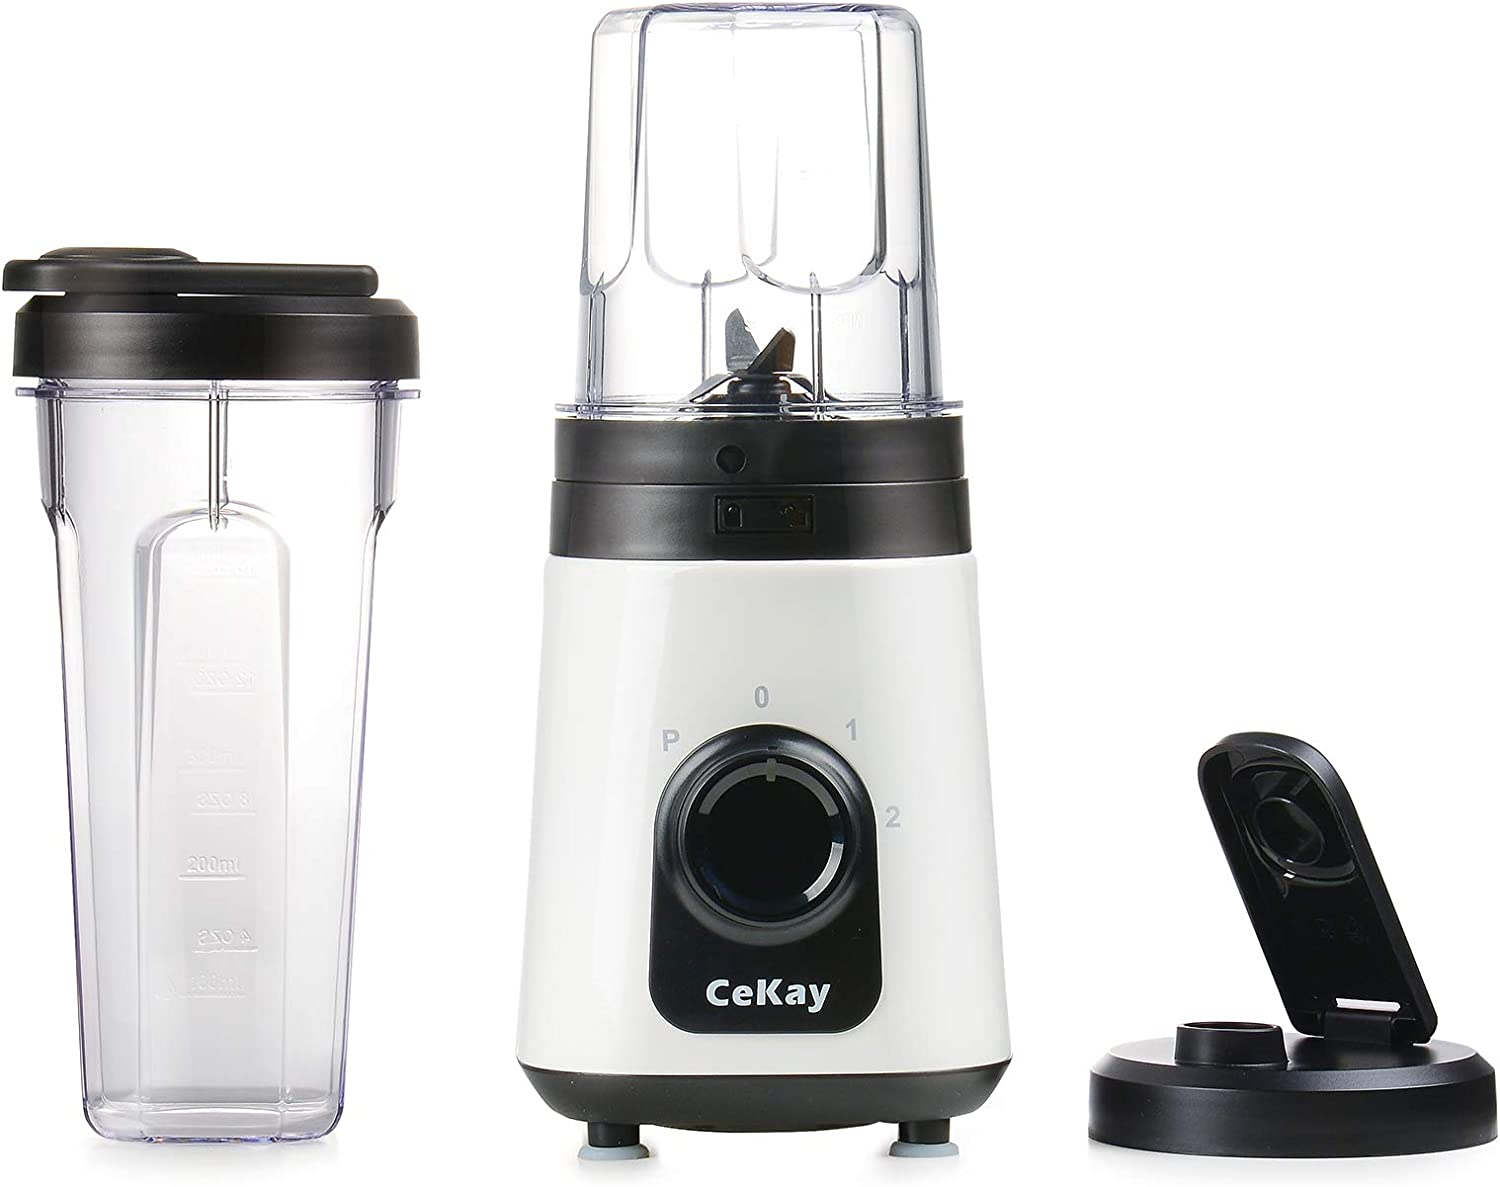 CeKay Personal Blender for Shakes, Smoothies, Food Prep, and Frozen Blending, with 10 oz & 20 oz BPA-Free Blender Cups